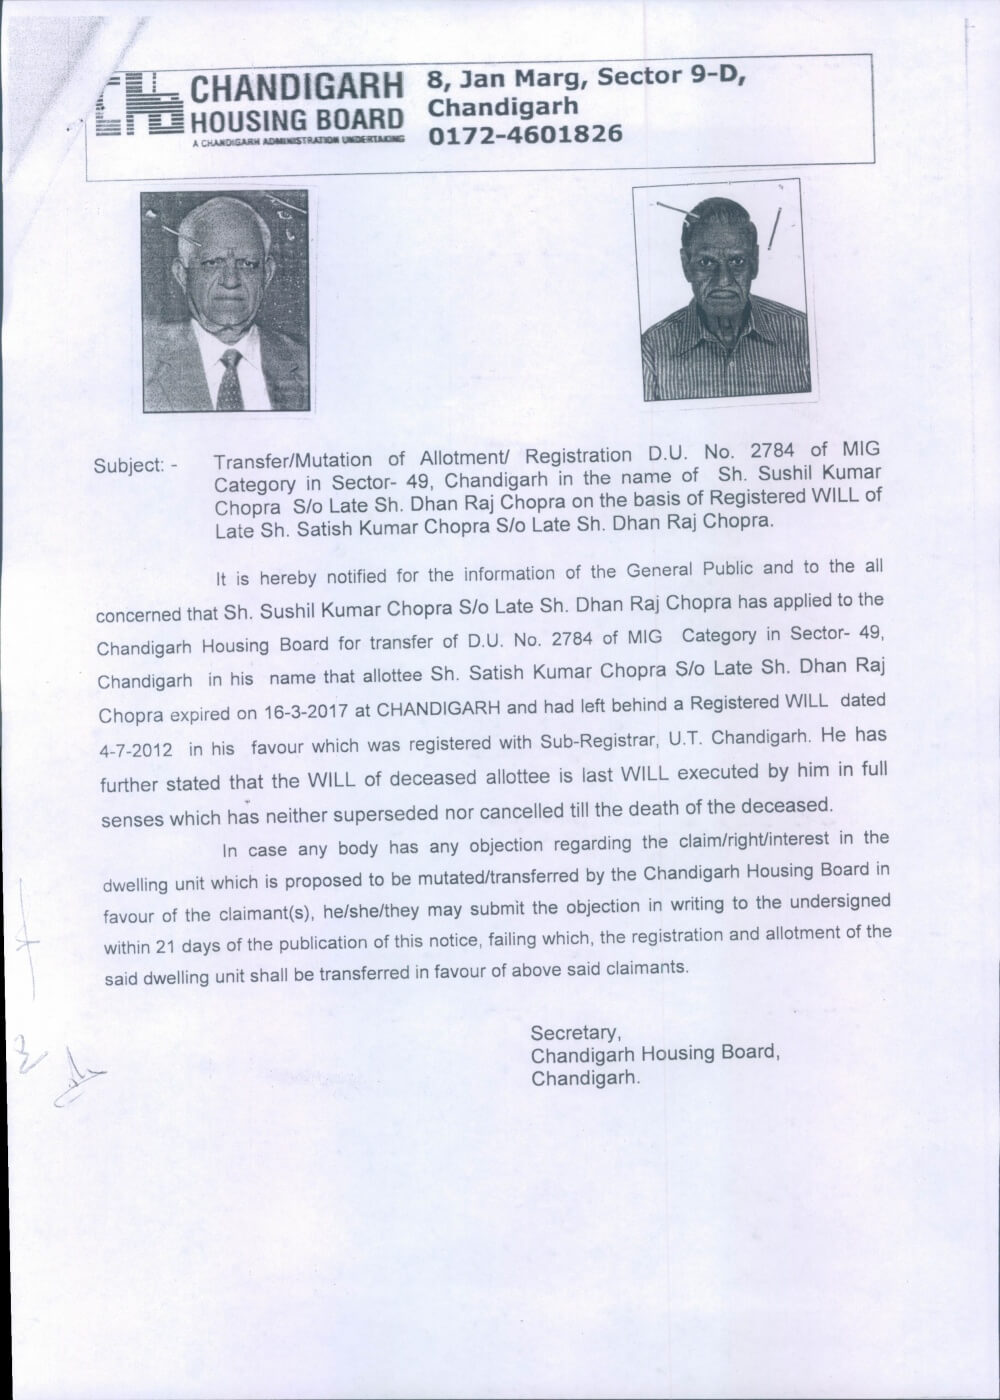 Issue of duplicate copies of allotment letter and possession.